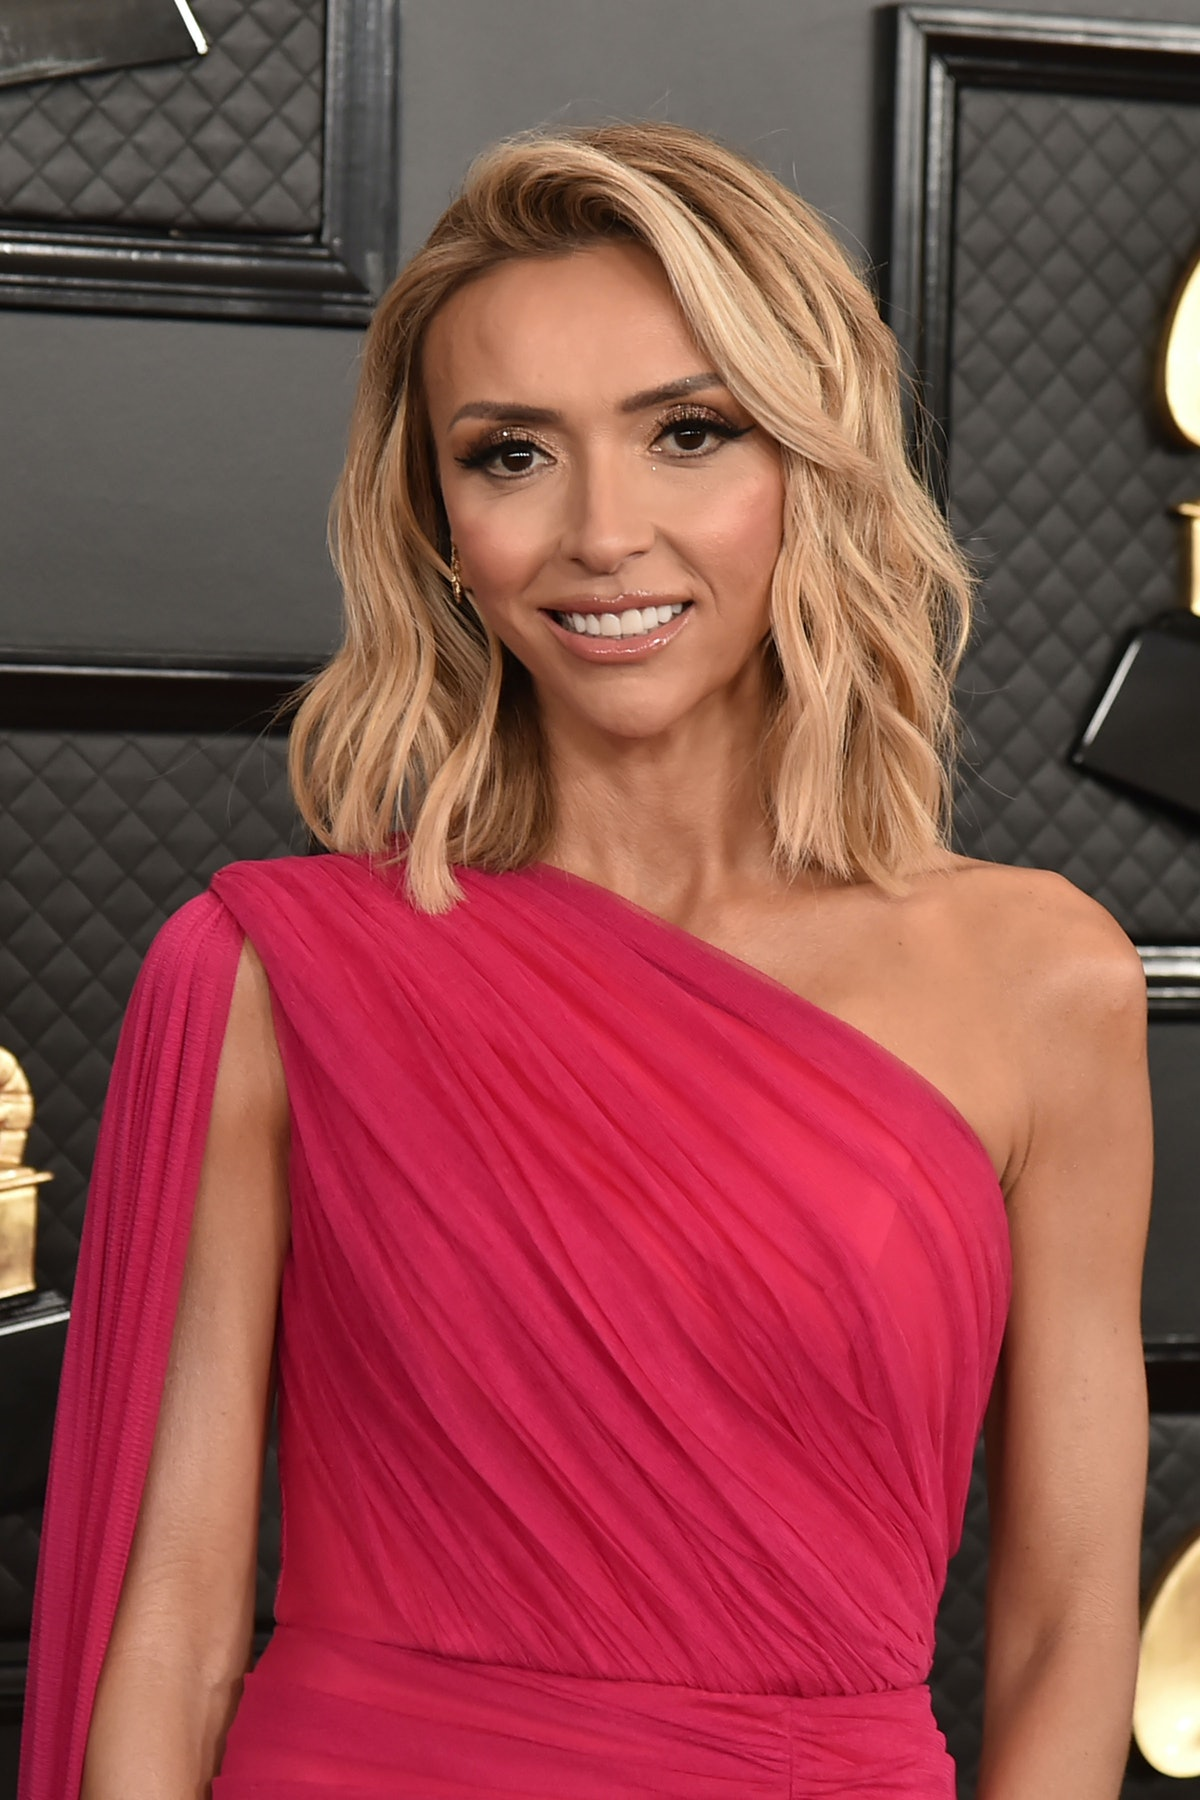 LOS ANGELES, CA - JANUARY 26: Giuliana Rancic attends the 62nd Annual Grammy Awards at Staples Cente...